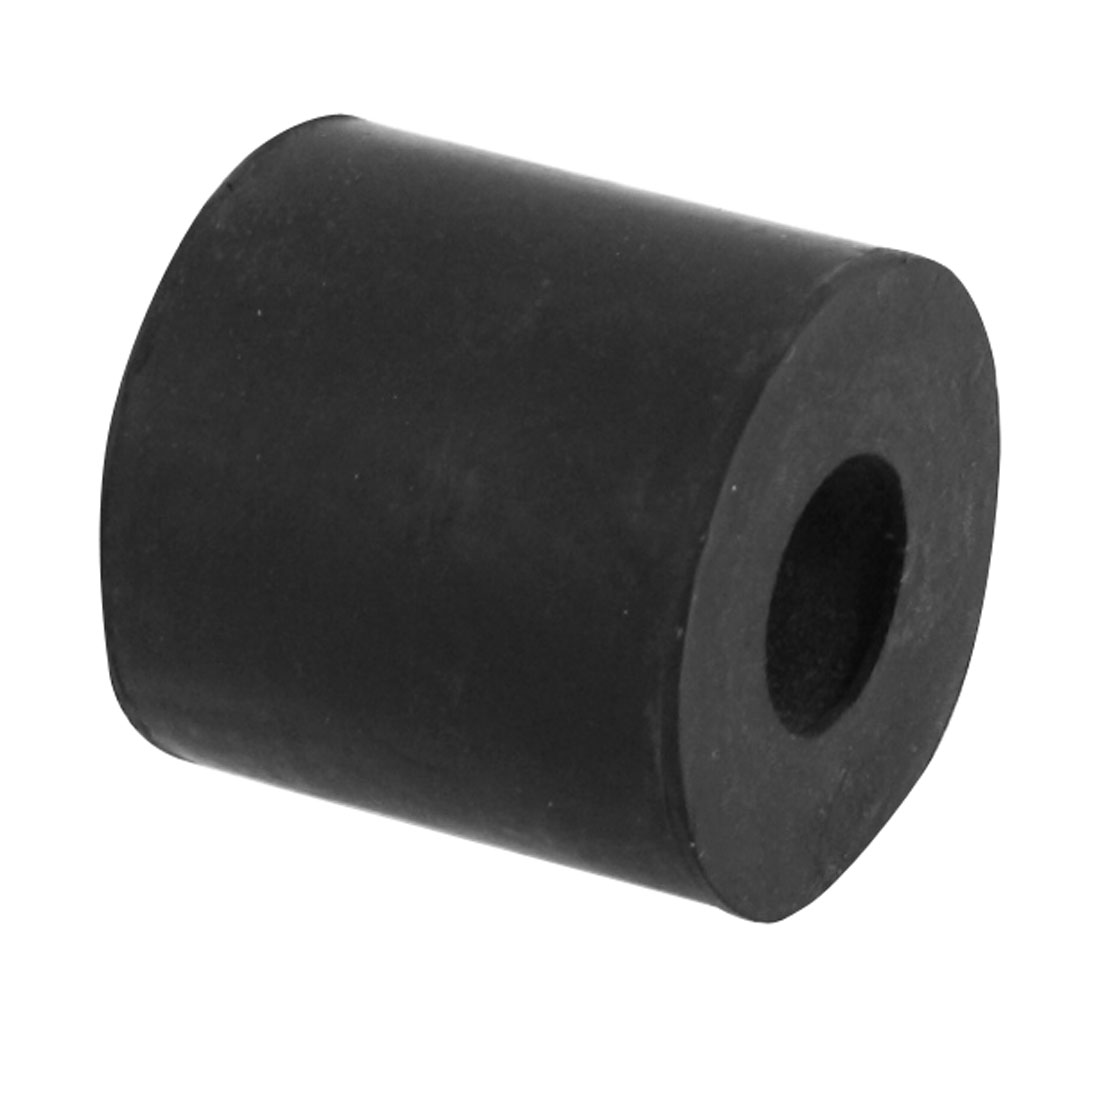 Cylinder Shaped Black Cushion Rubber Bush 14mm x 28mm x 29mm